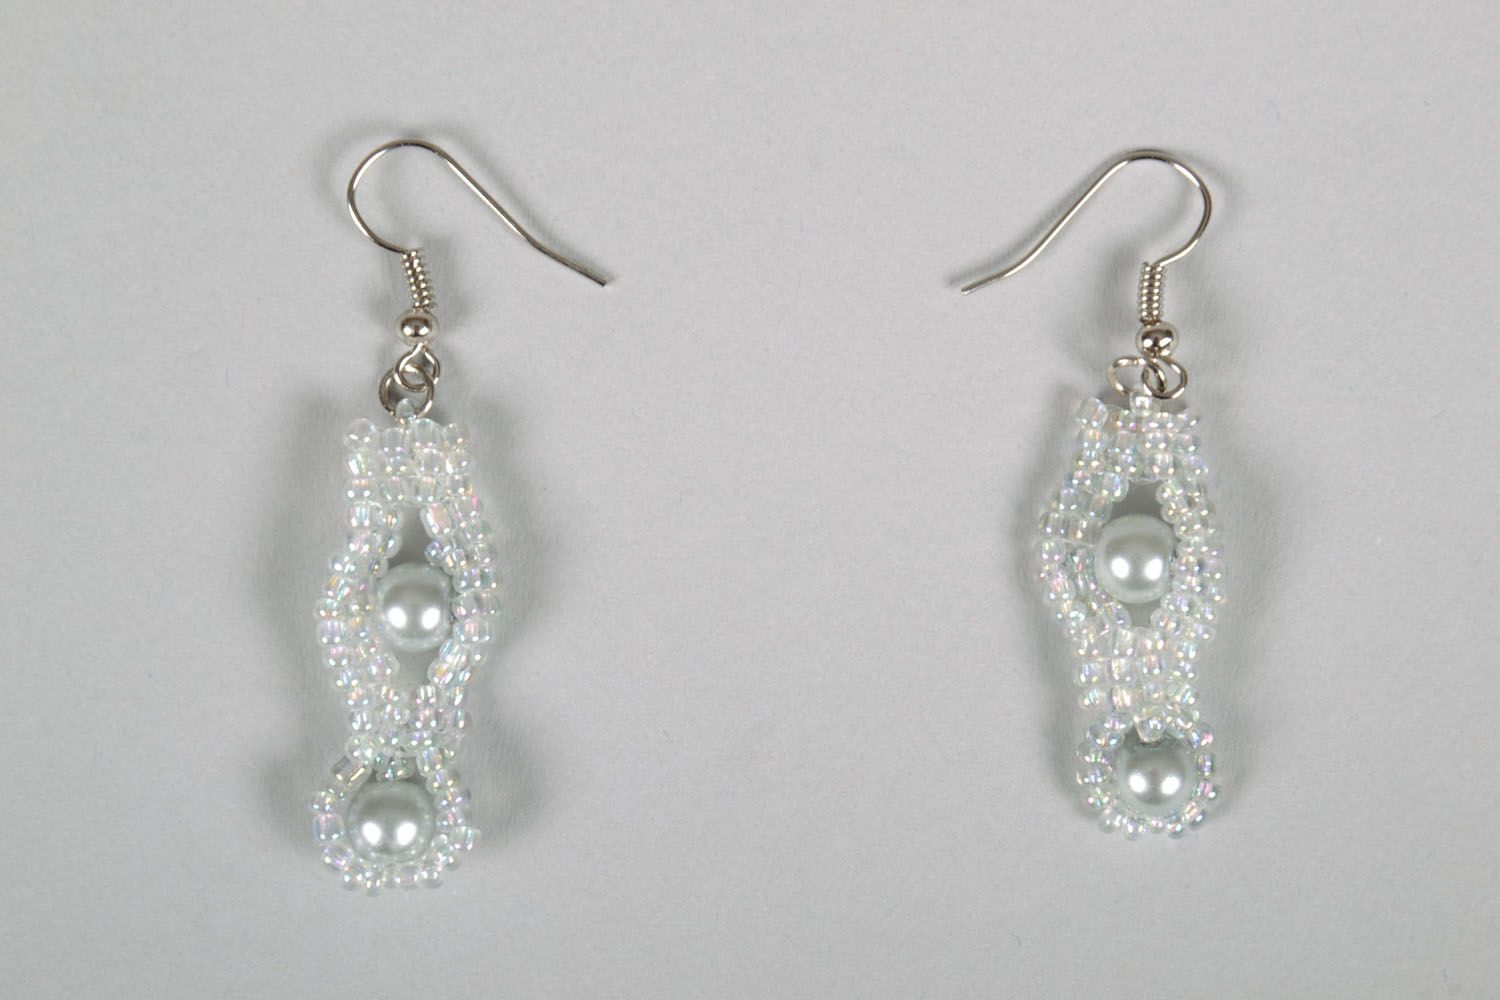 White earrings with artificial pearls photo 2